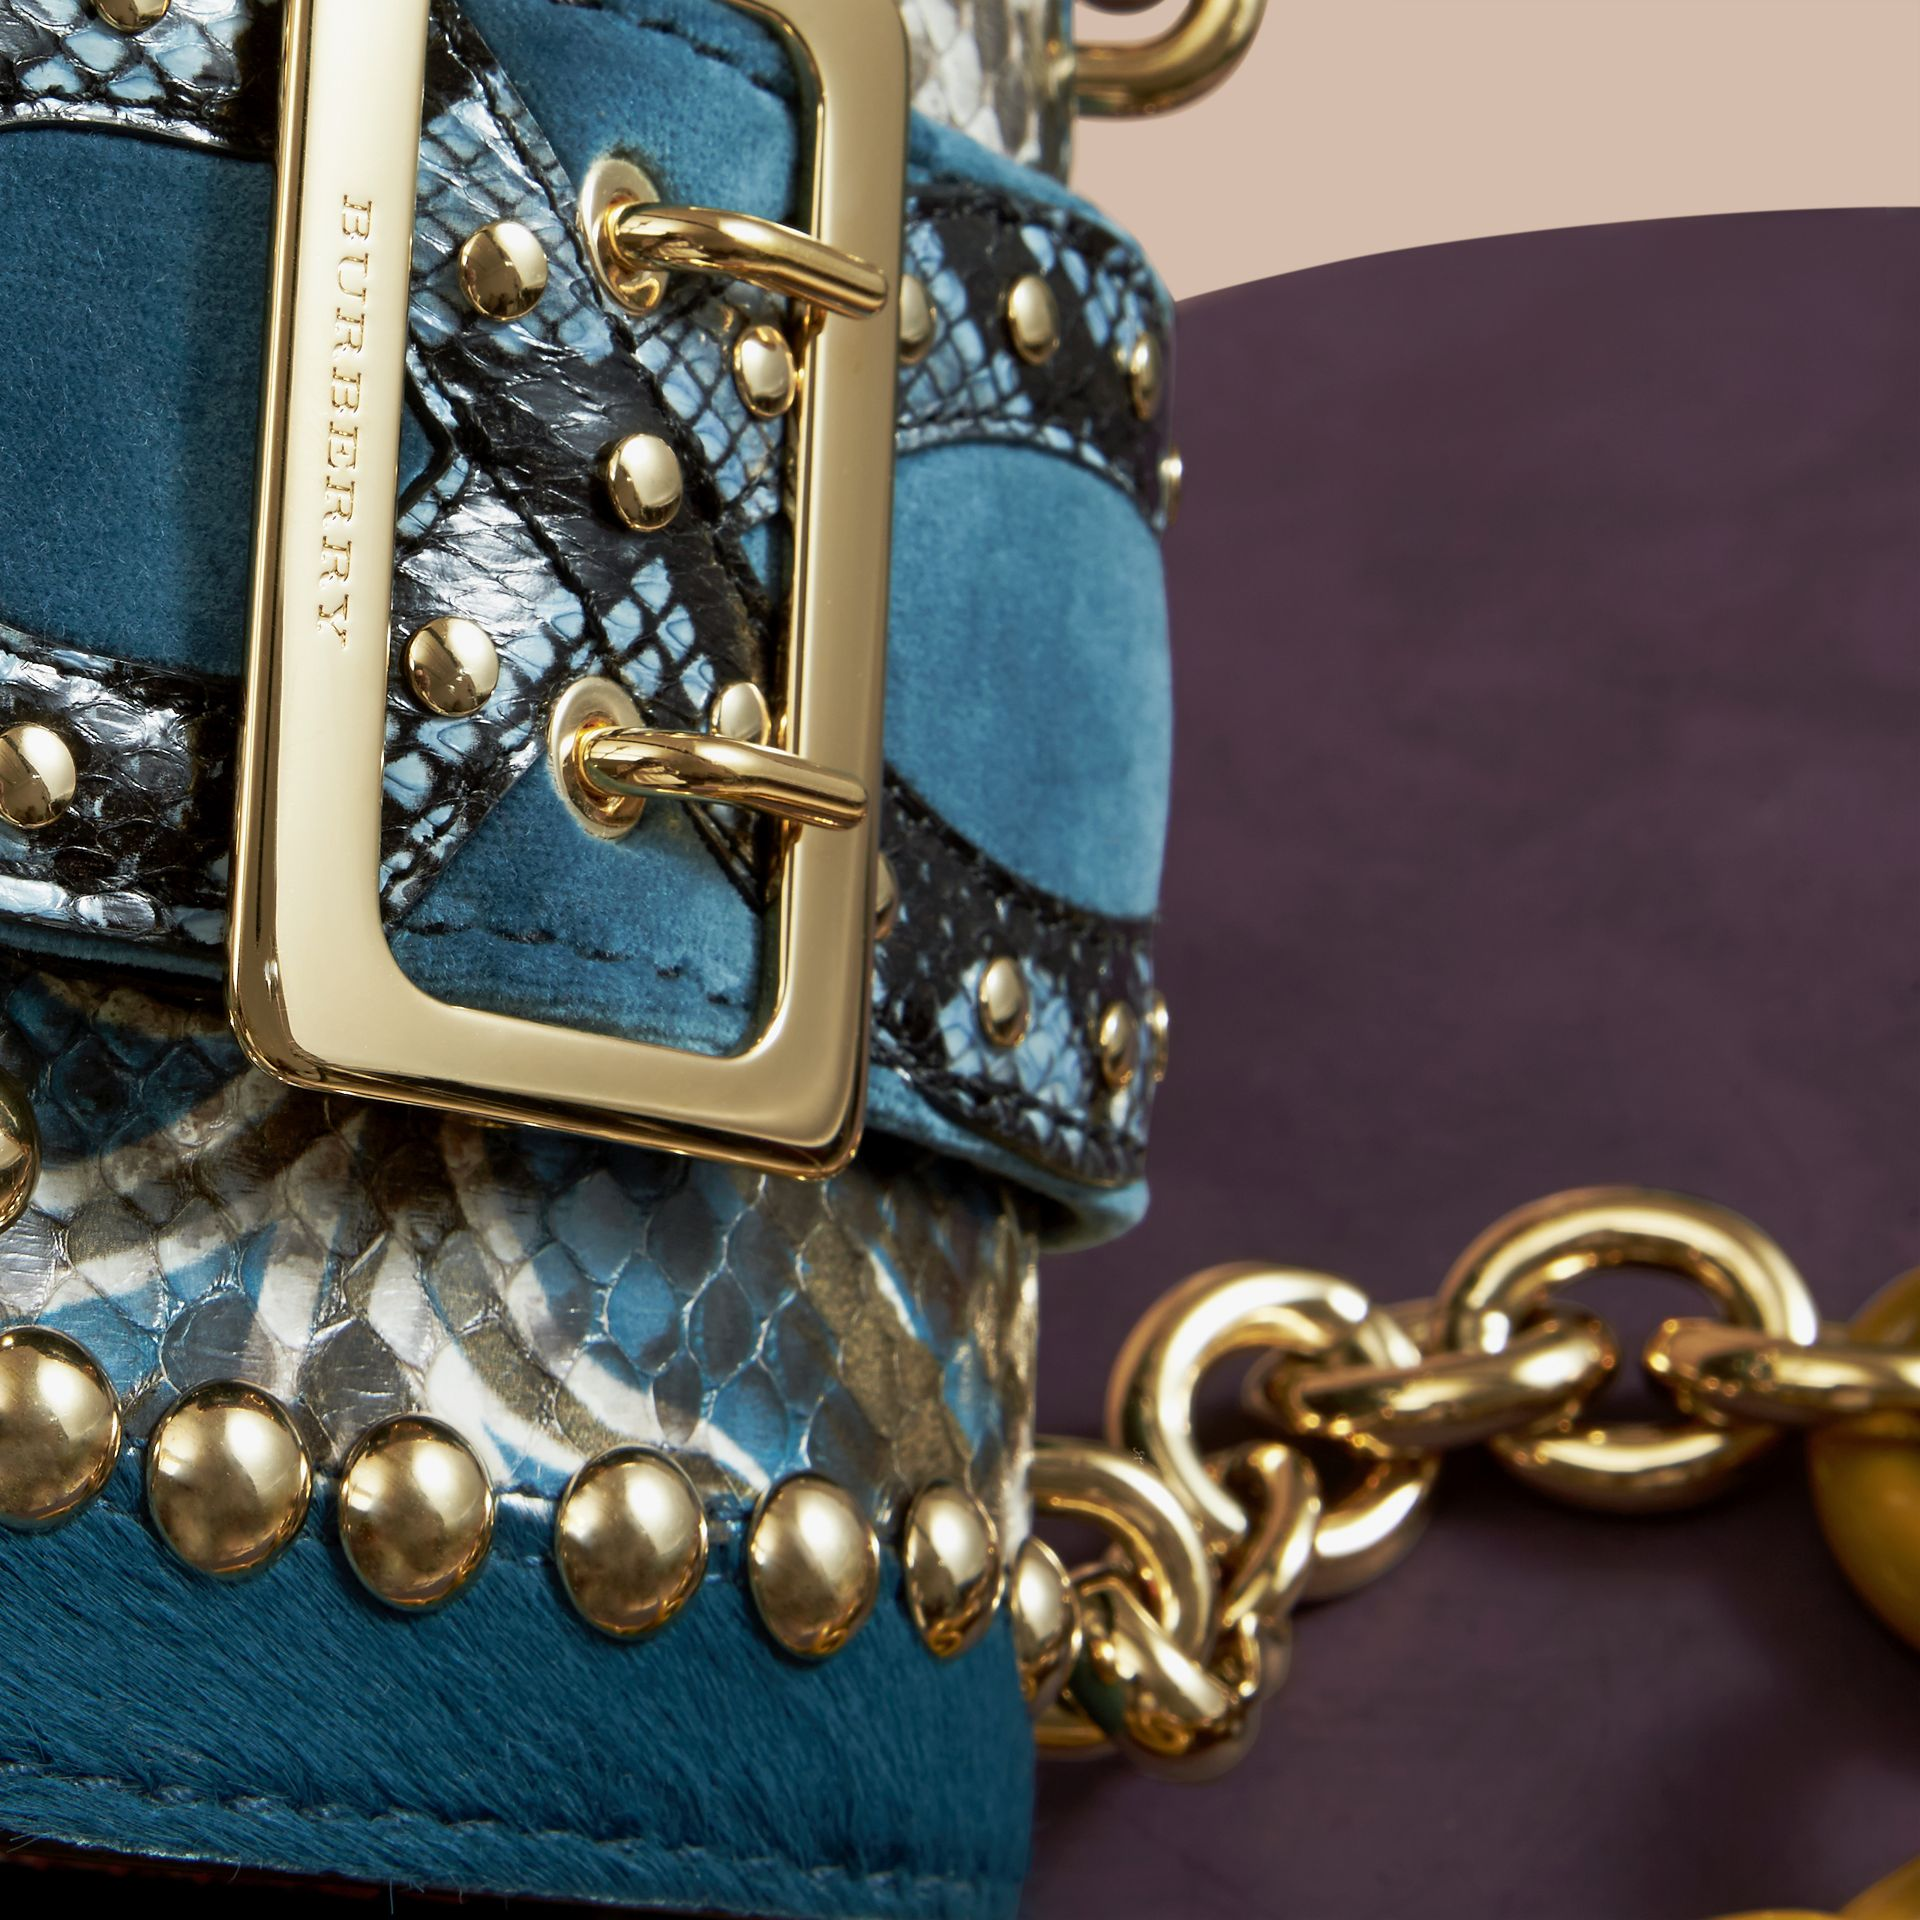 Pale opal The Mini Square Buckle Bag in Calfskin, Snakeskin and Velvet Pale Opal - gallery image 2